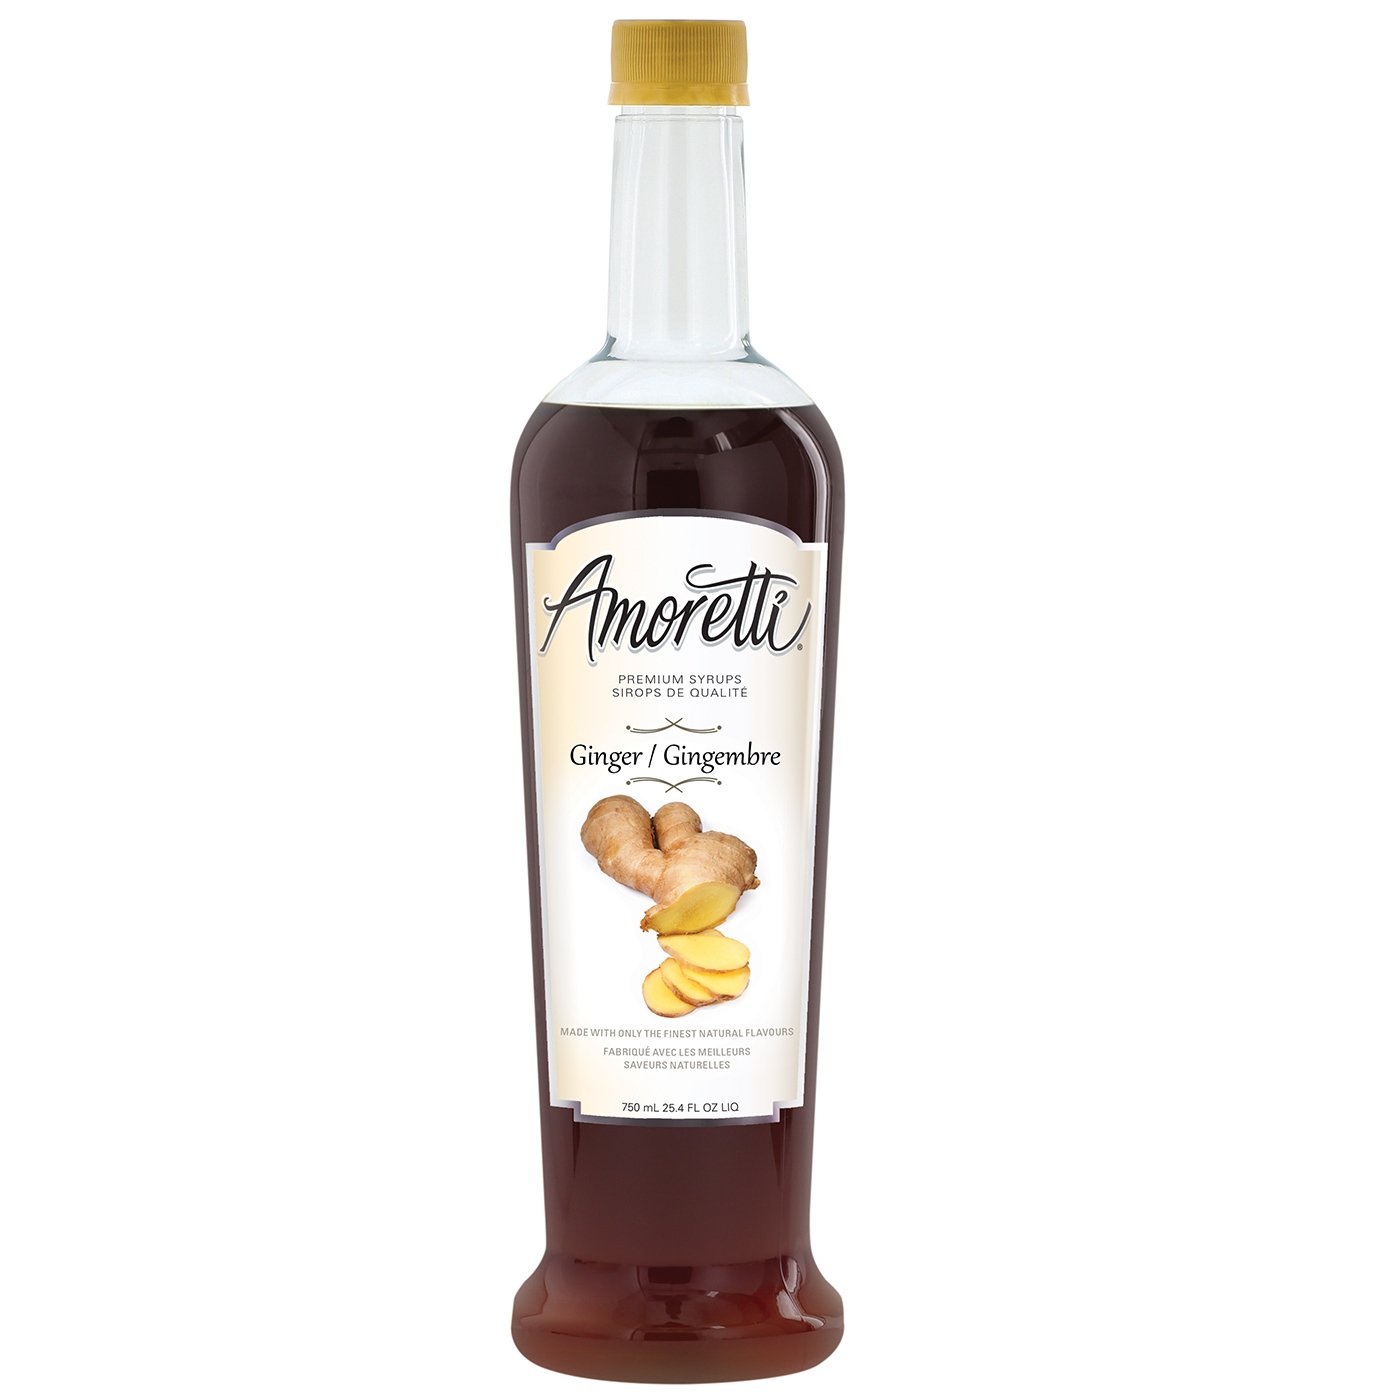 Amoretti Premium Ginger Syrup, 25.4 Fluid Ounce